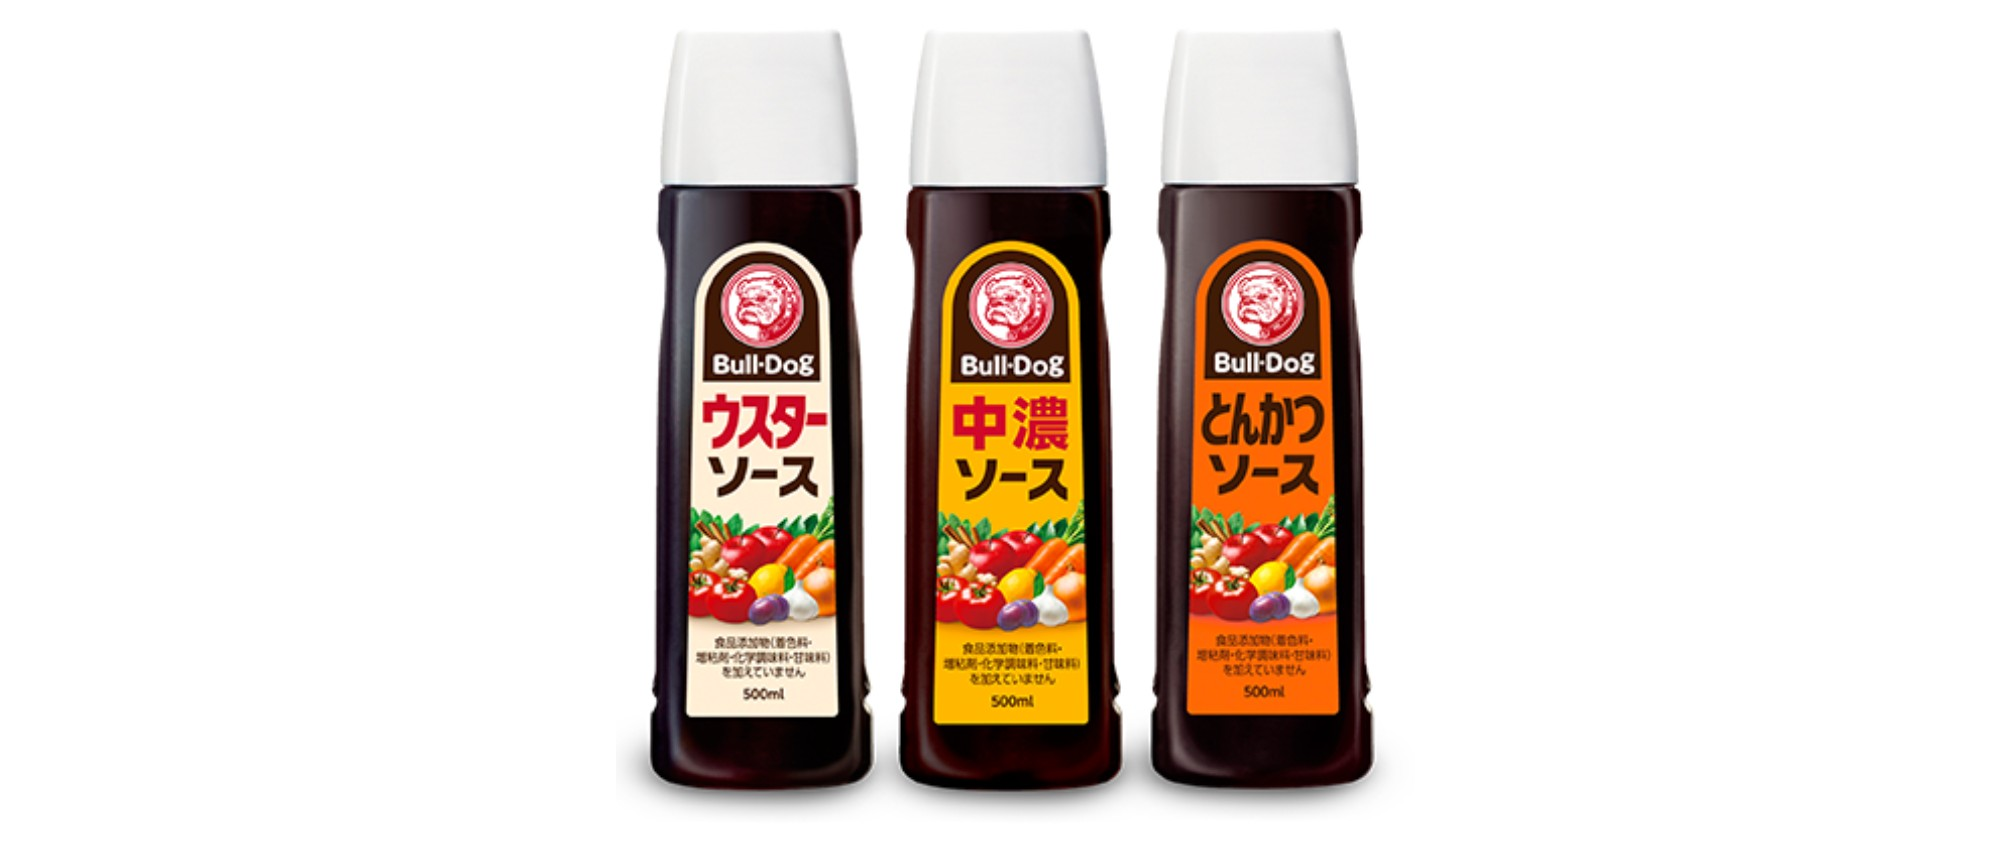 Japanese Bull-Dog Sauces